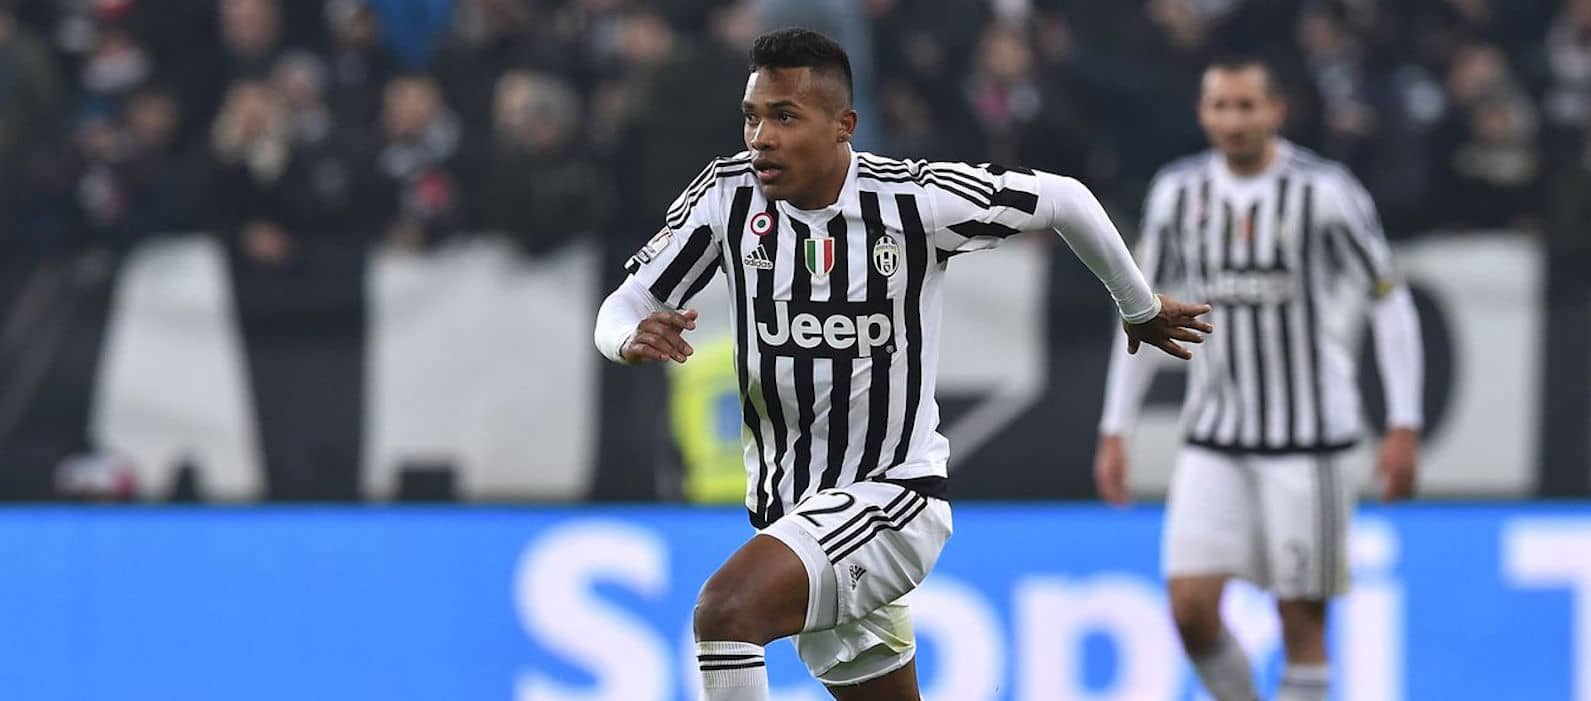 From Italy: Manchester United yet to make formal offer for Alex Sandro